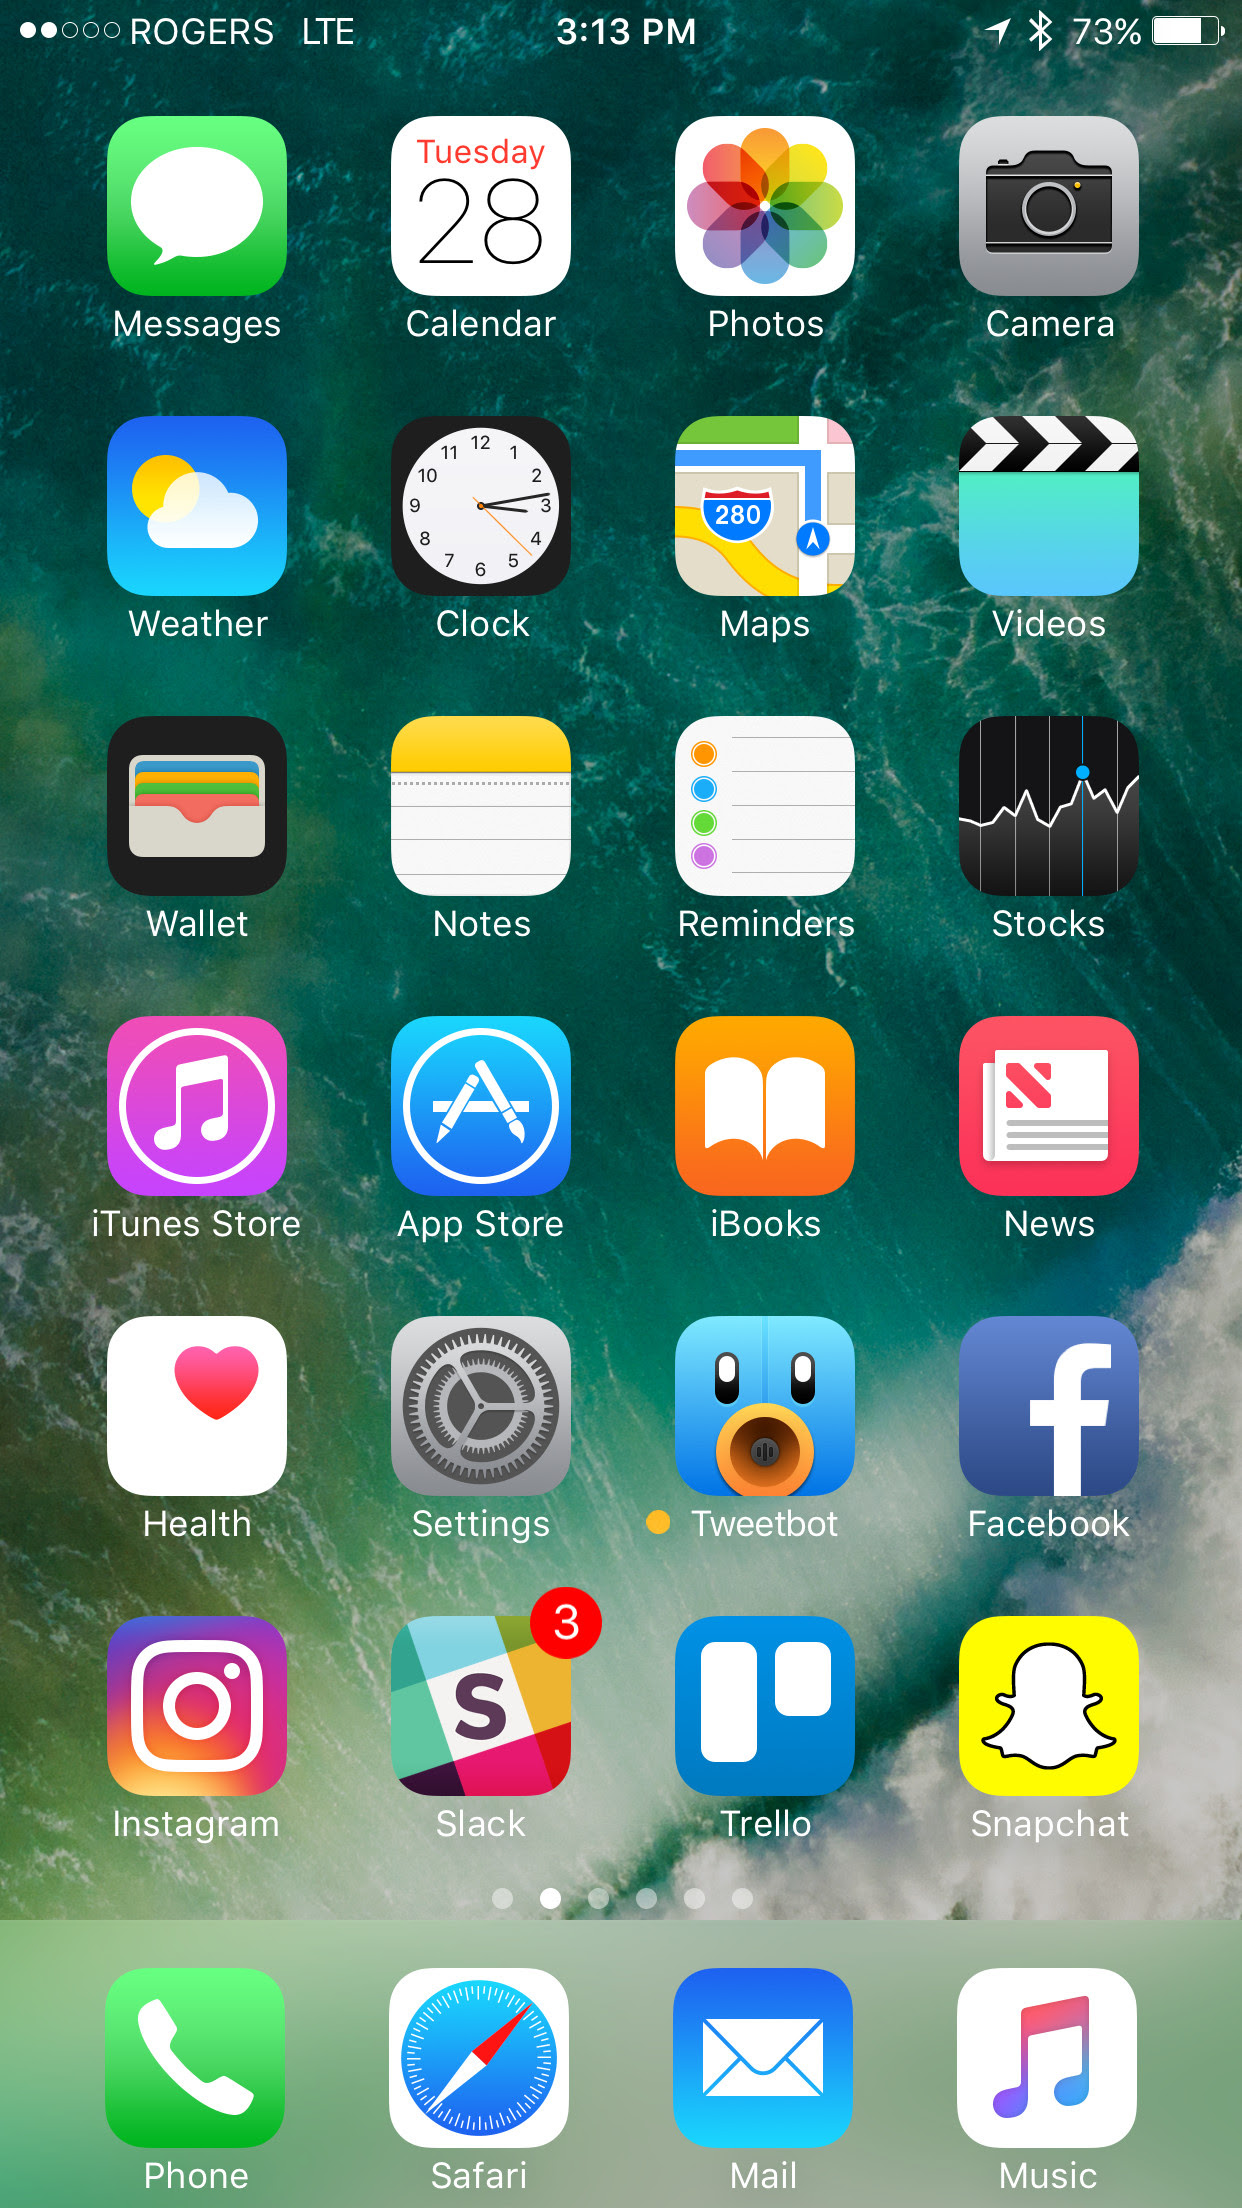 Cool iPhone Home Screen Wallpapers (61+ images)